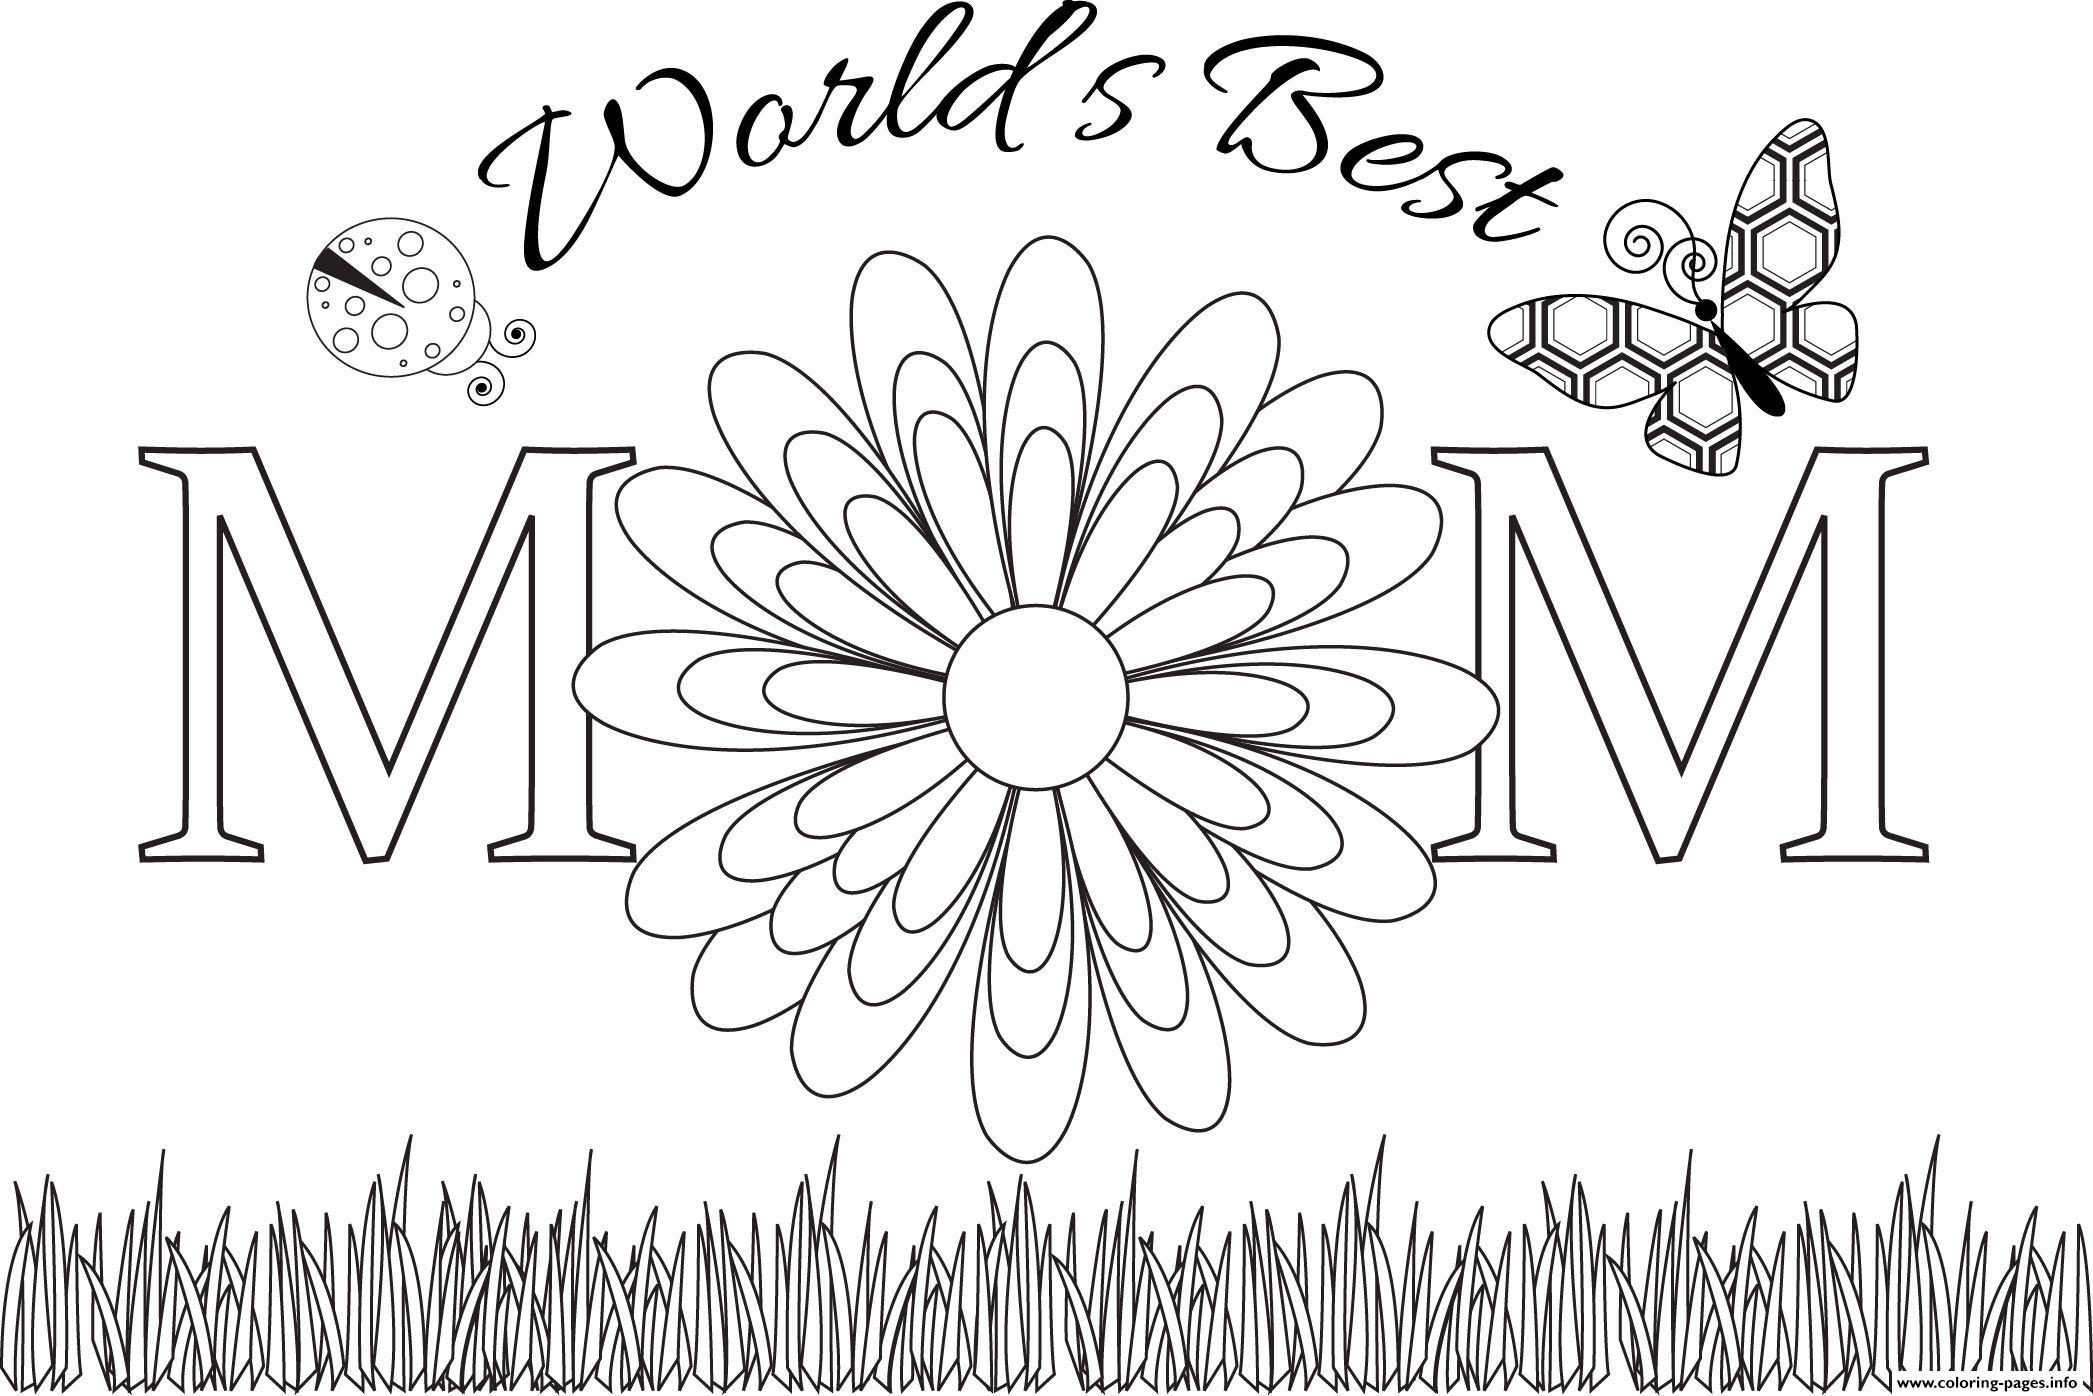 Best Mom Ever Coloring Sheets Mothers Day Coloring Day Pages Best Of